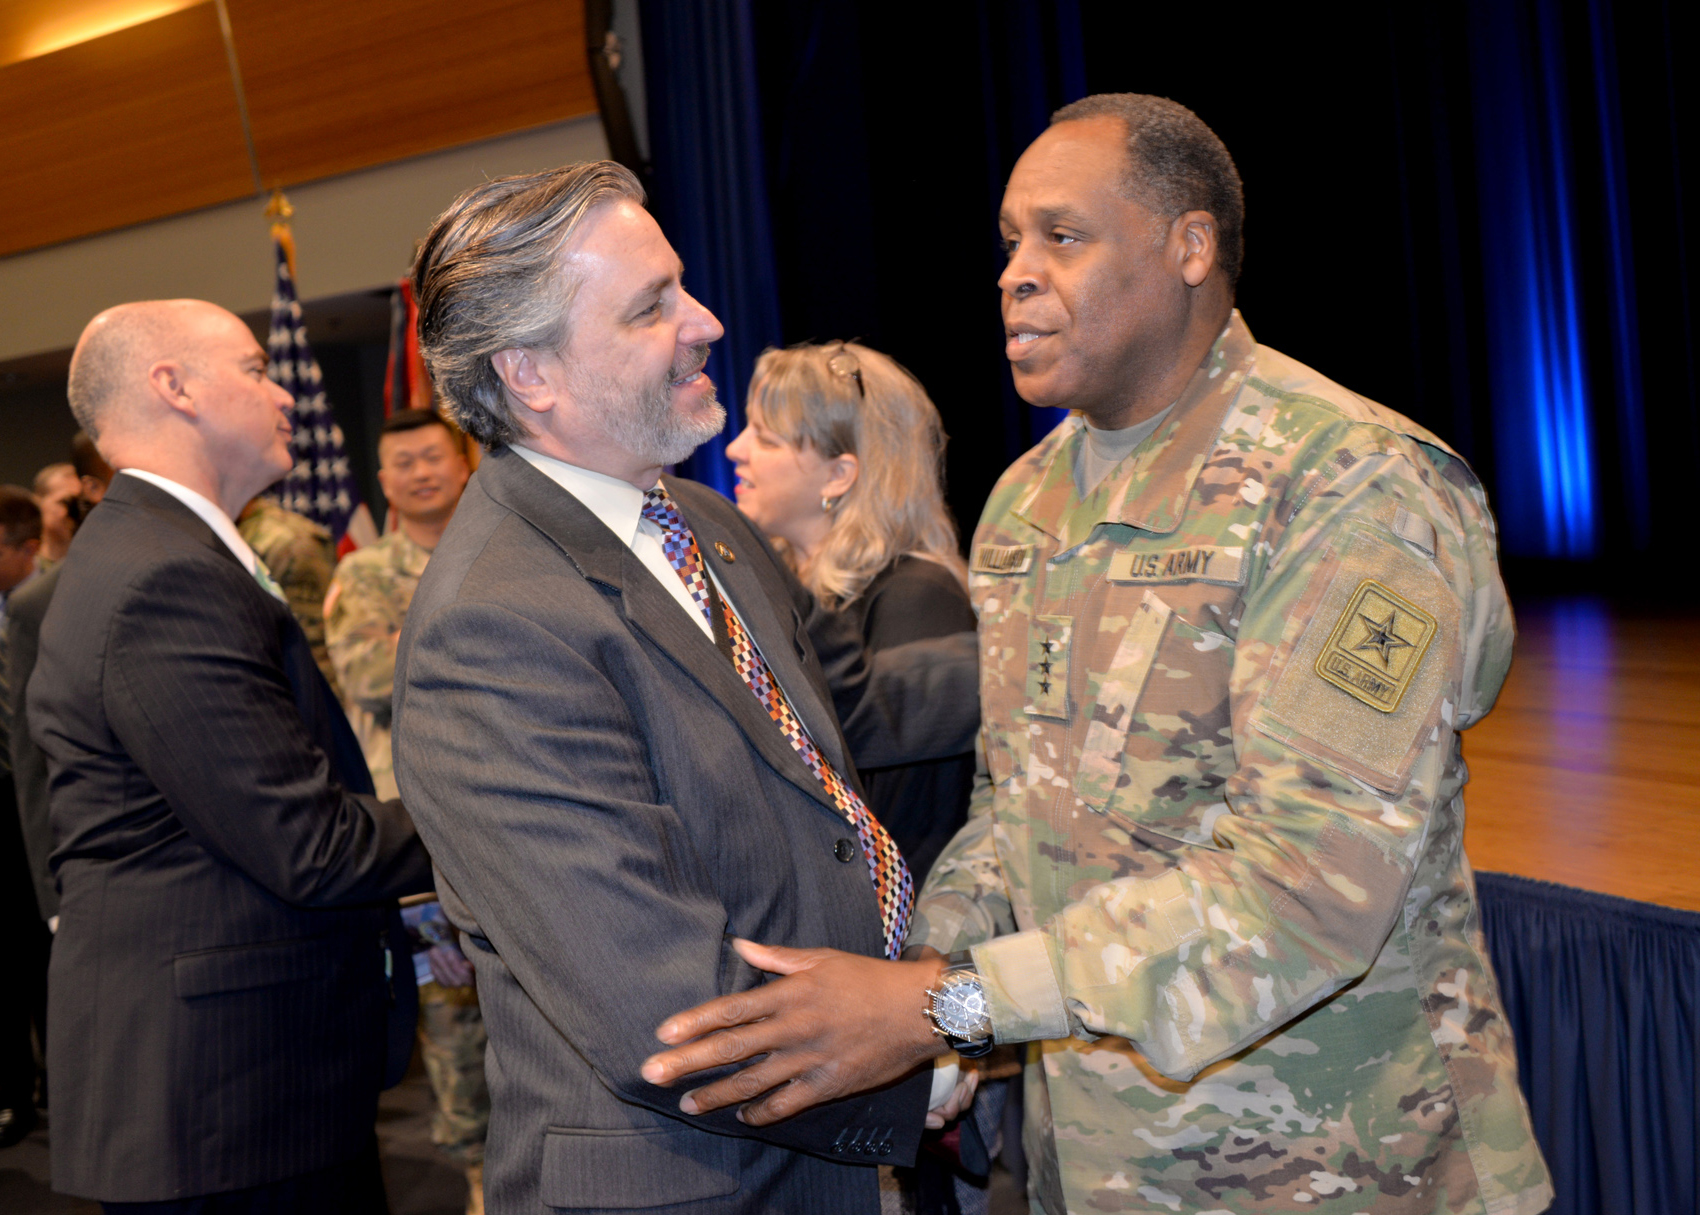 "Lt. Gen. Williamson greets Craig Spisak, director of the U.S. Army Acquisition Support Center and deputy director, acquisition career management, at the farewell ceremony. ""One of the prime things Lt. Gen. Williamson did when he came into this organization was care about people and start a number of efforts—all about talent management,"" said Spisak. (U.S. Army photo by Tara Clements/Released)"